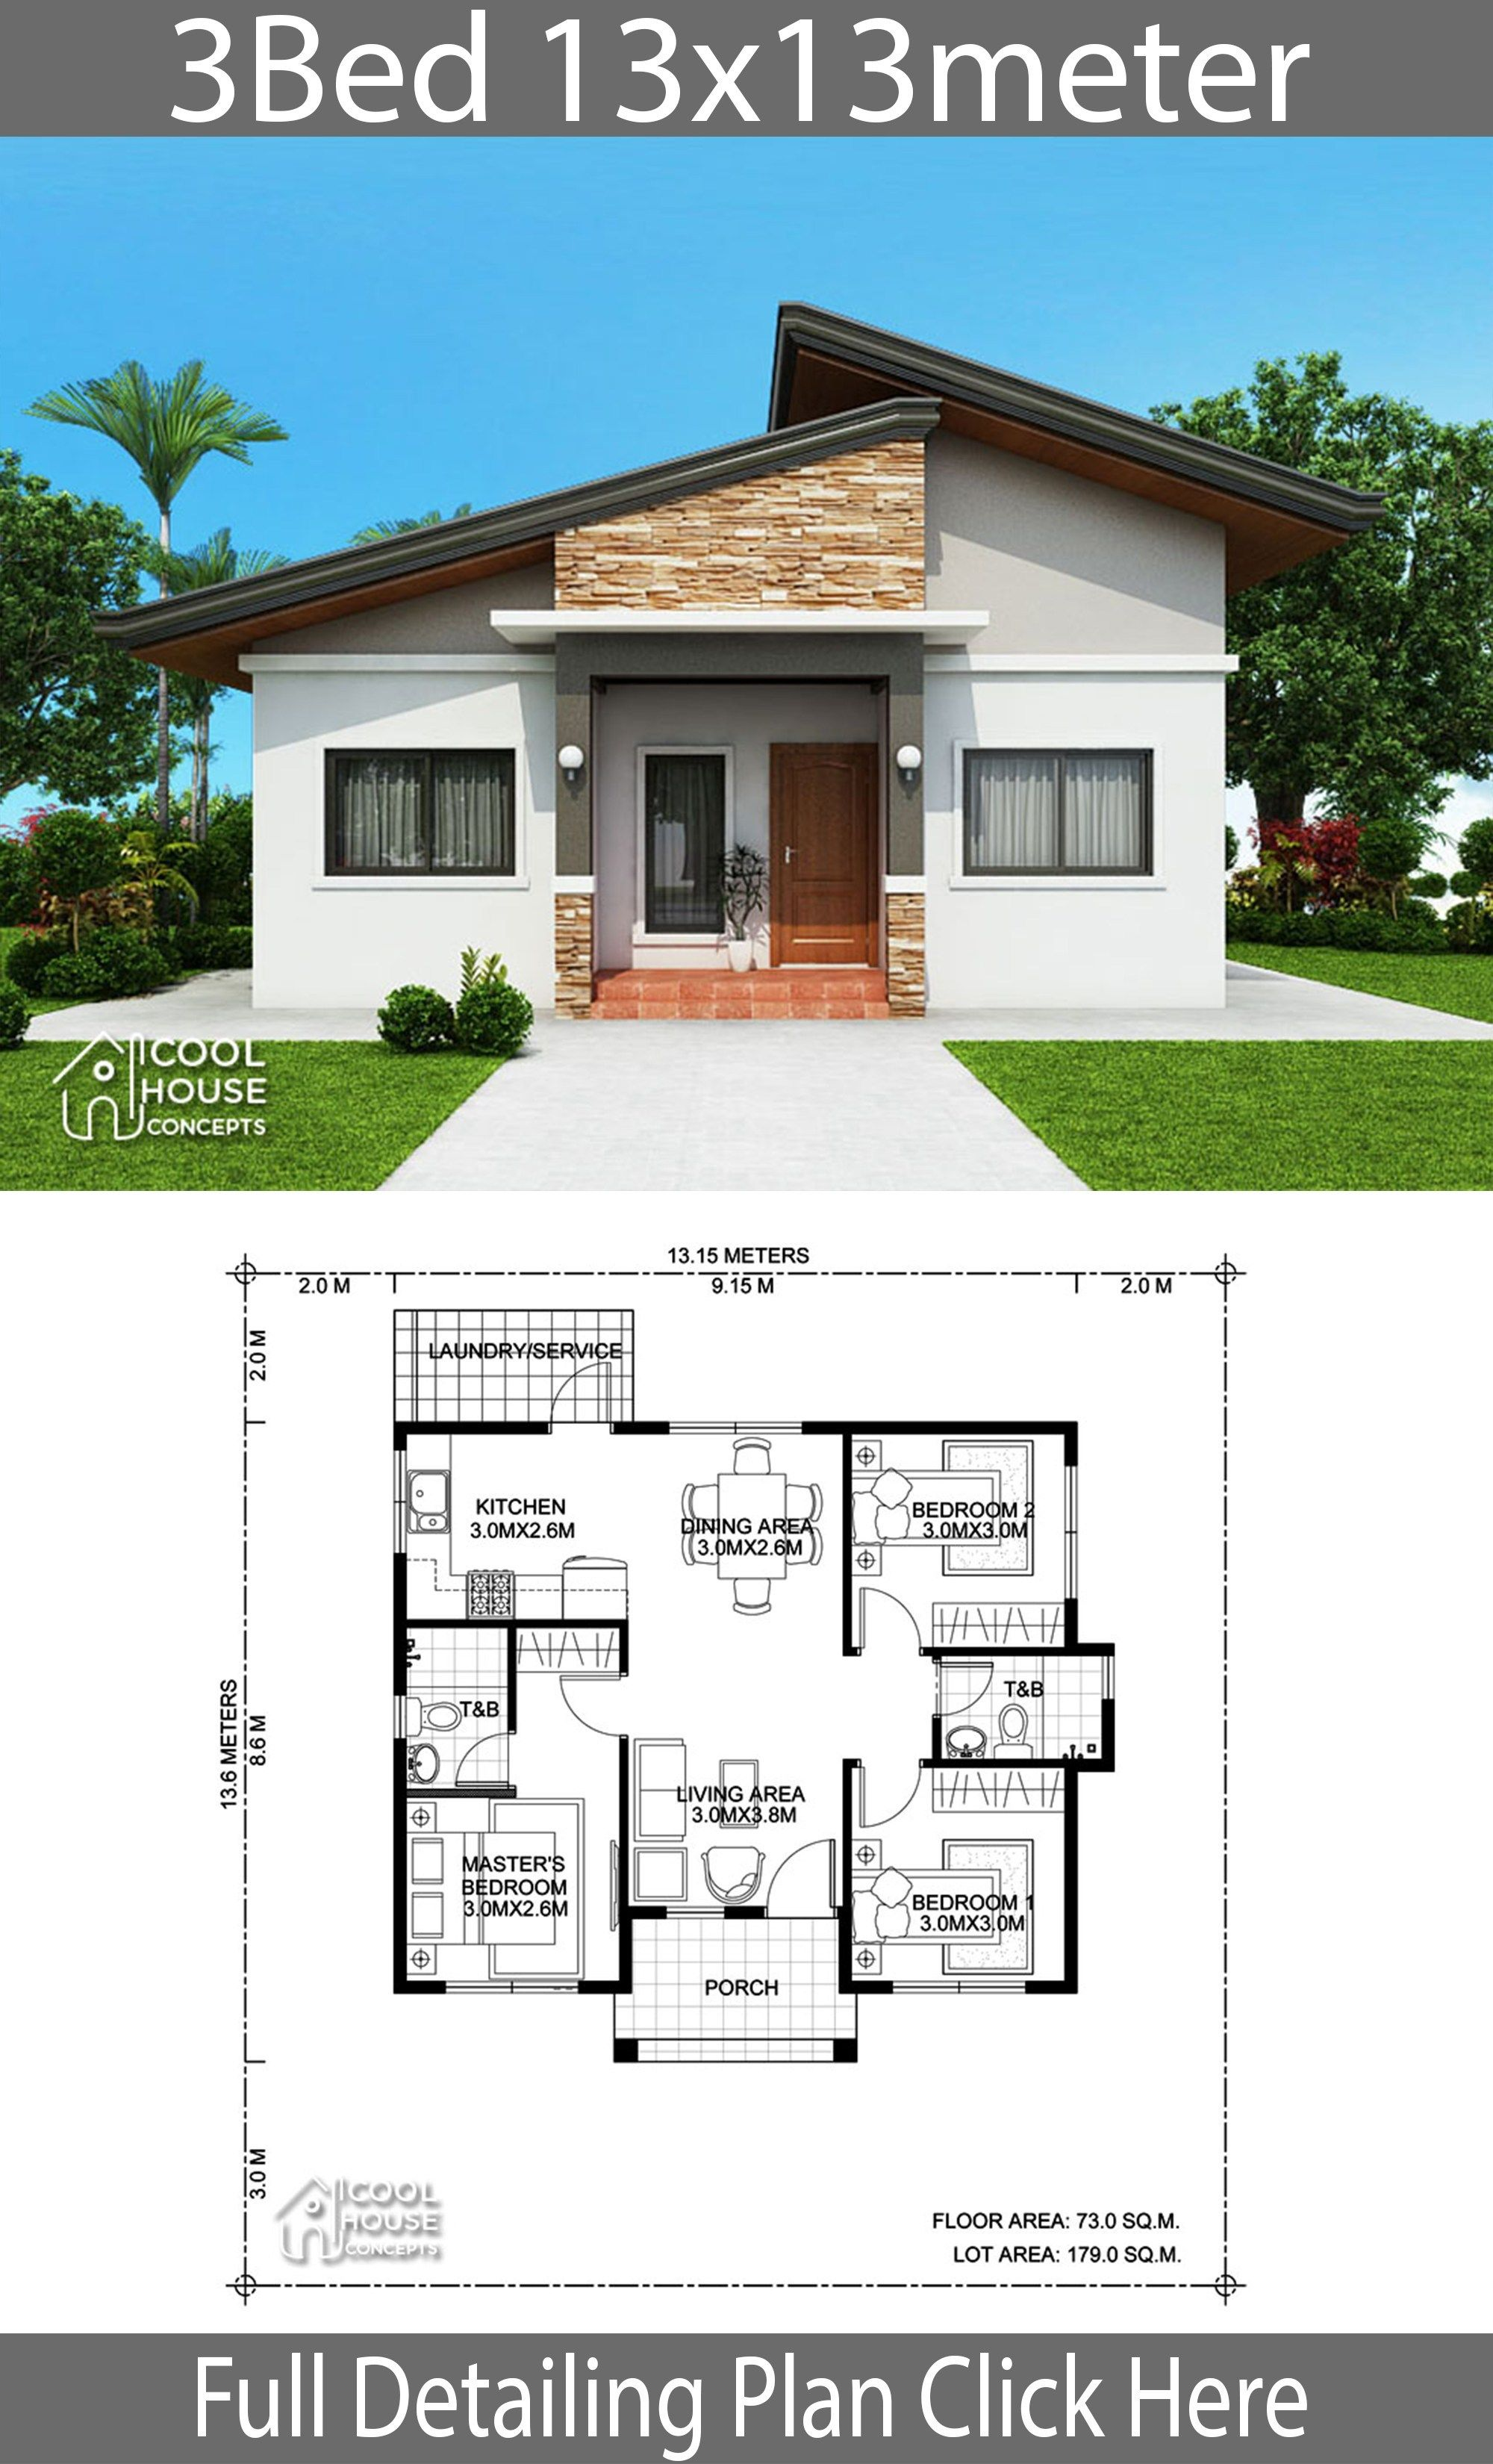 Home Design Plan 13x13m With 3 Bedrooms Home Design With Plan Modern Bungalow House Bungalow House Plans Bungalow House Design